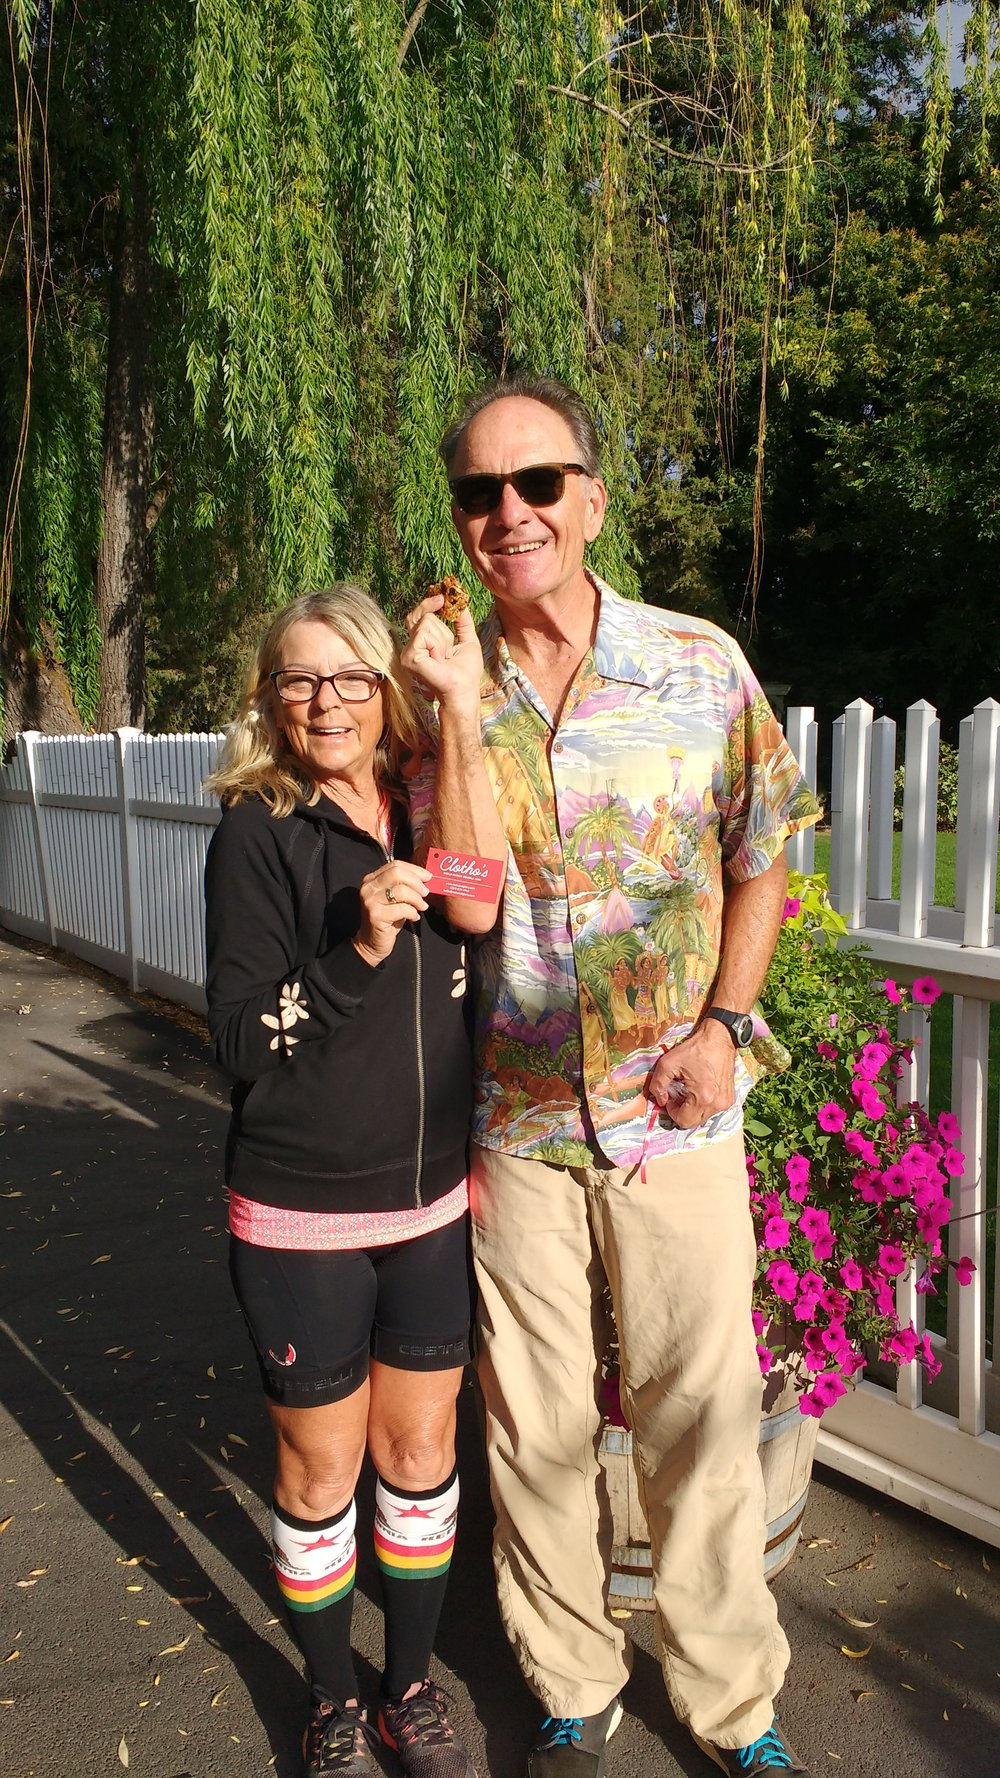 Romance novelist Kat Drennan and her muse/sweetheart/main squeeze Fred shared this photo from the garden of the Birchfield Inn near Yakima, Washington. They started the day sharing a Nuts and Glory granola bar in the sunshine before bicycling through the Yakima valley.